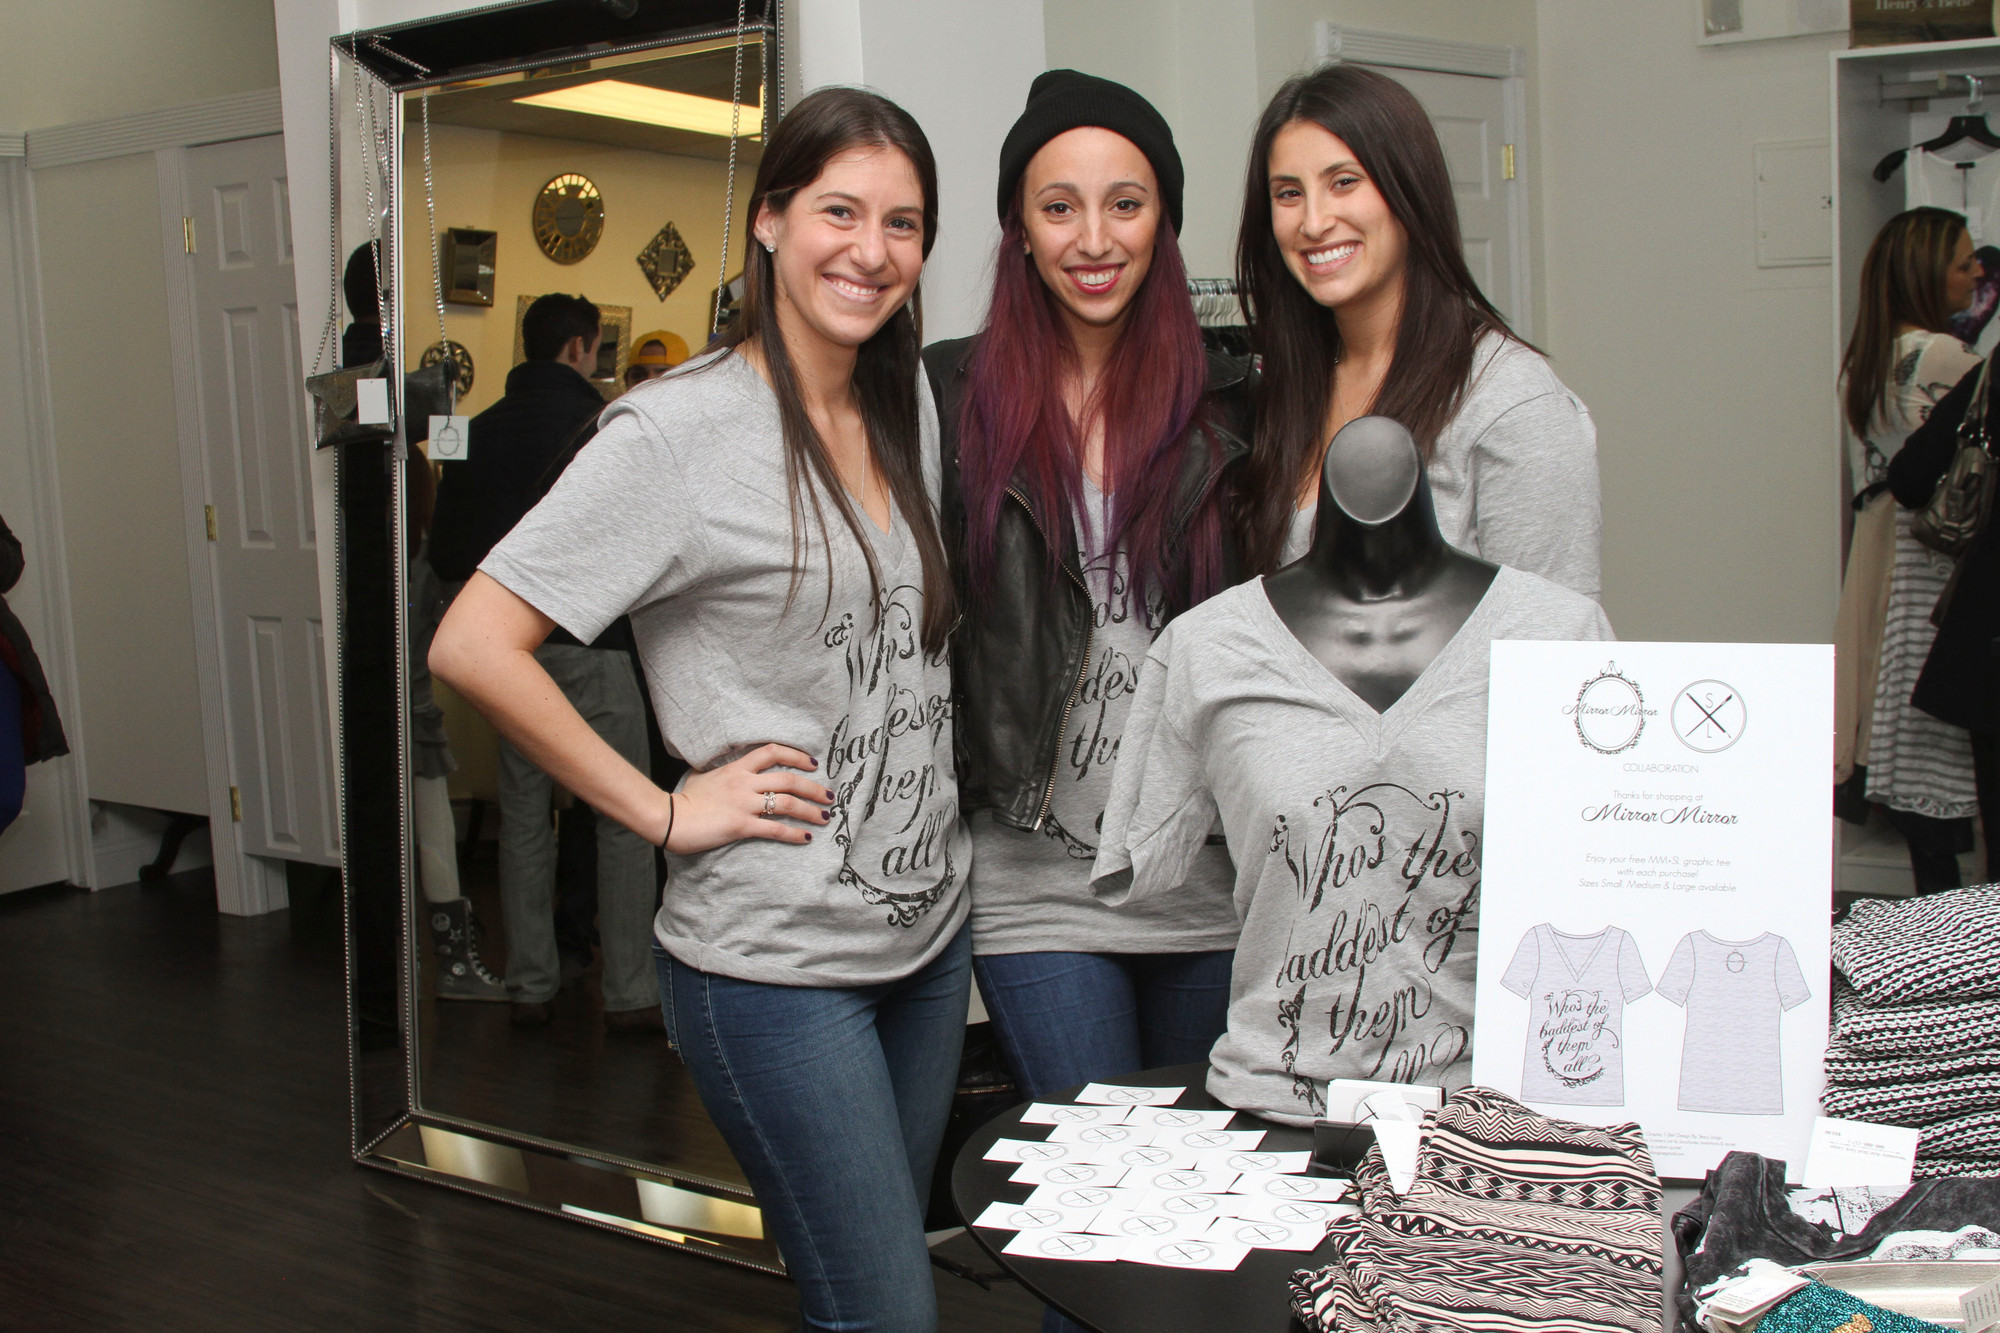 Mirror Mirror is co-owned by Lena Schajer, left,and Shelley Fico, right. In the center is their graphic designer, Stacy Longo.